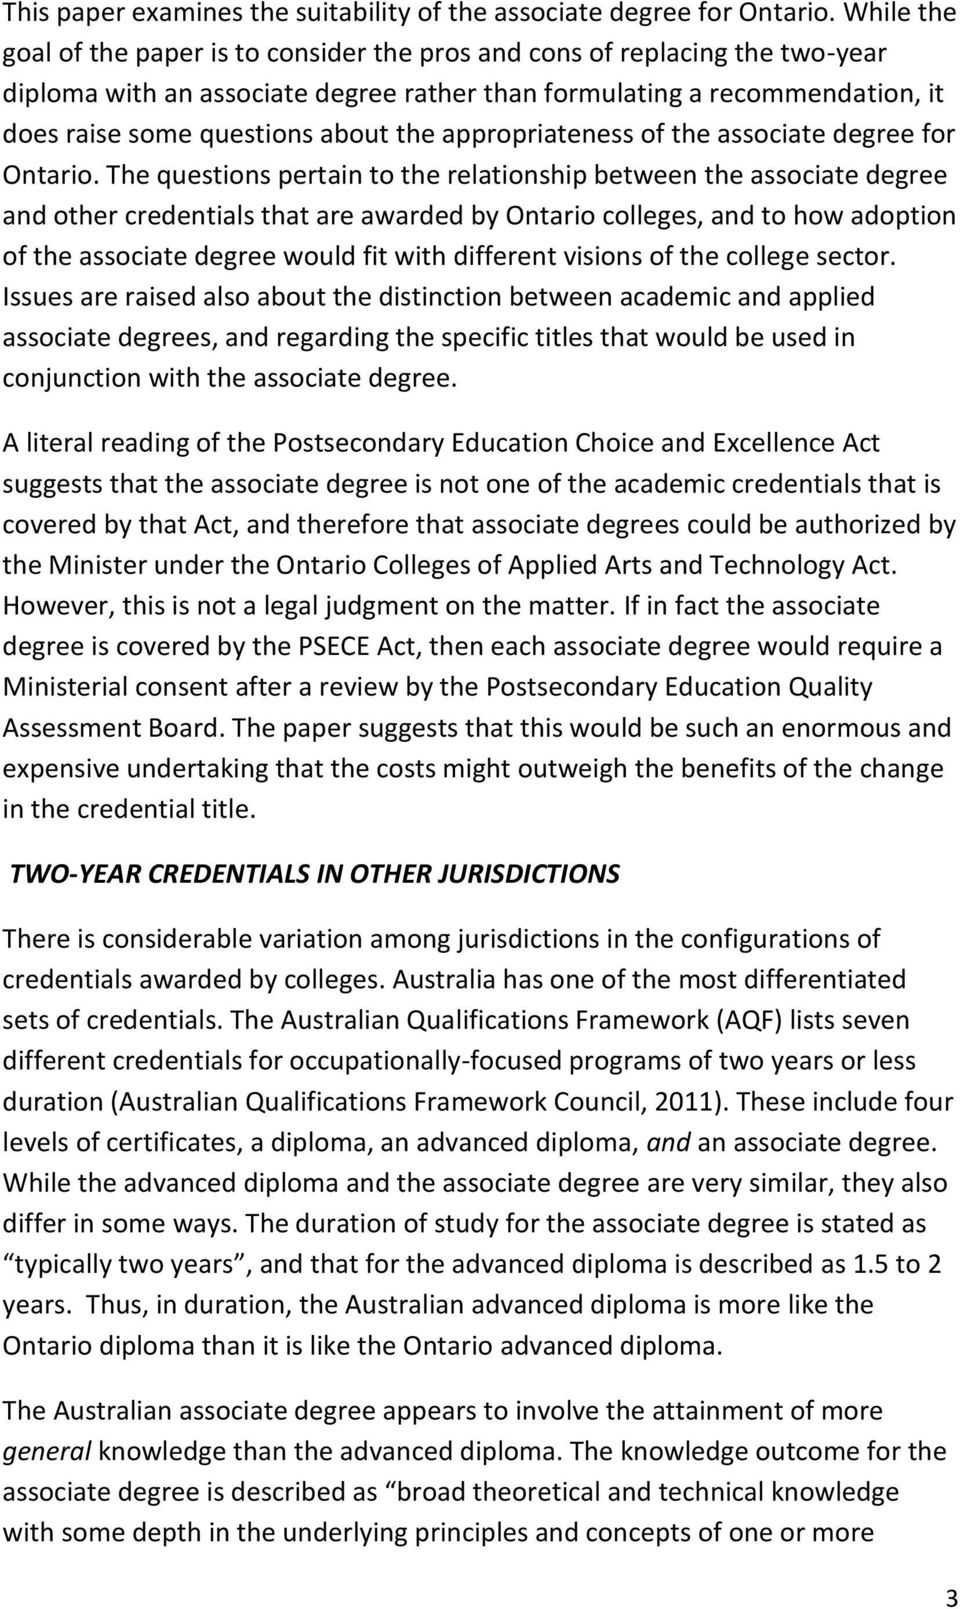 the appropriateness of the associate degree for Ontario.